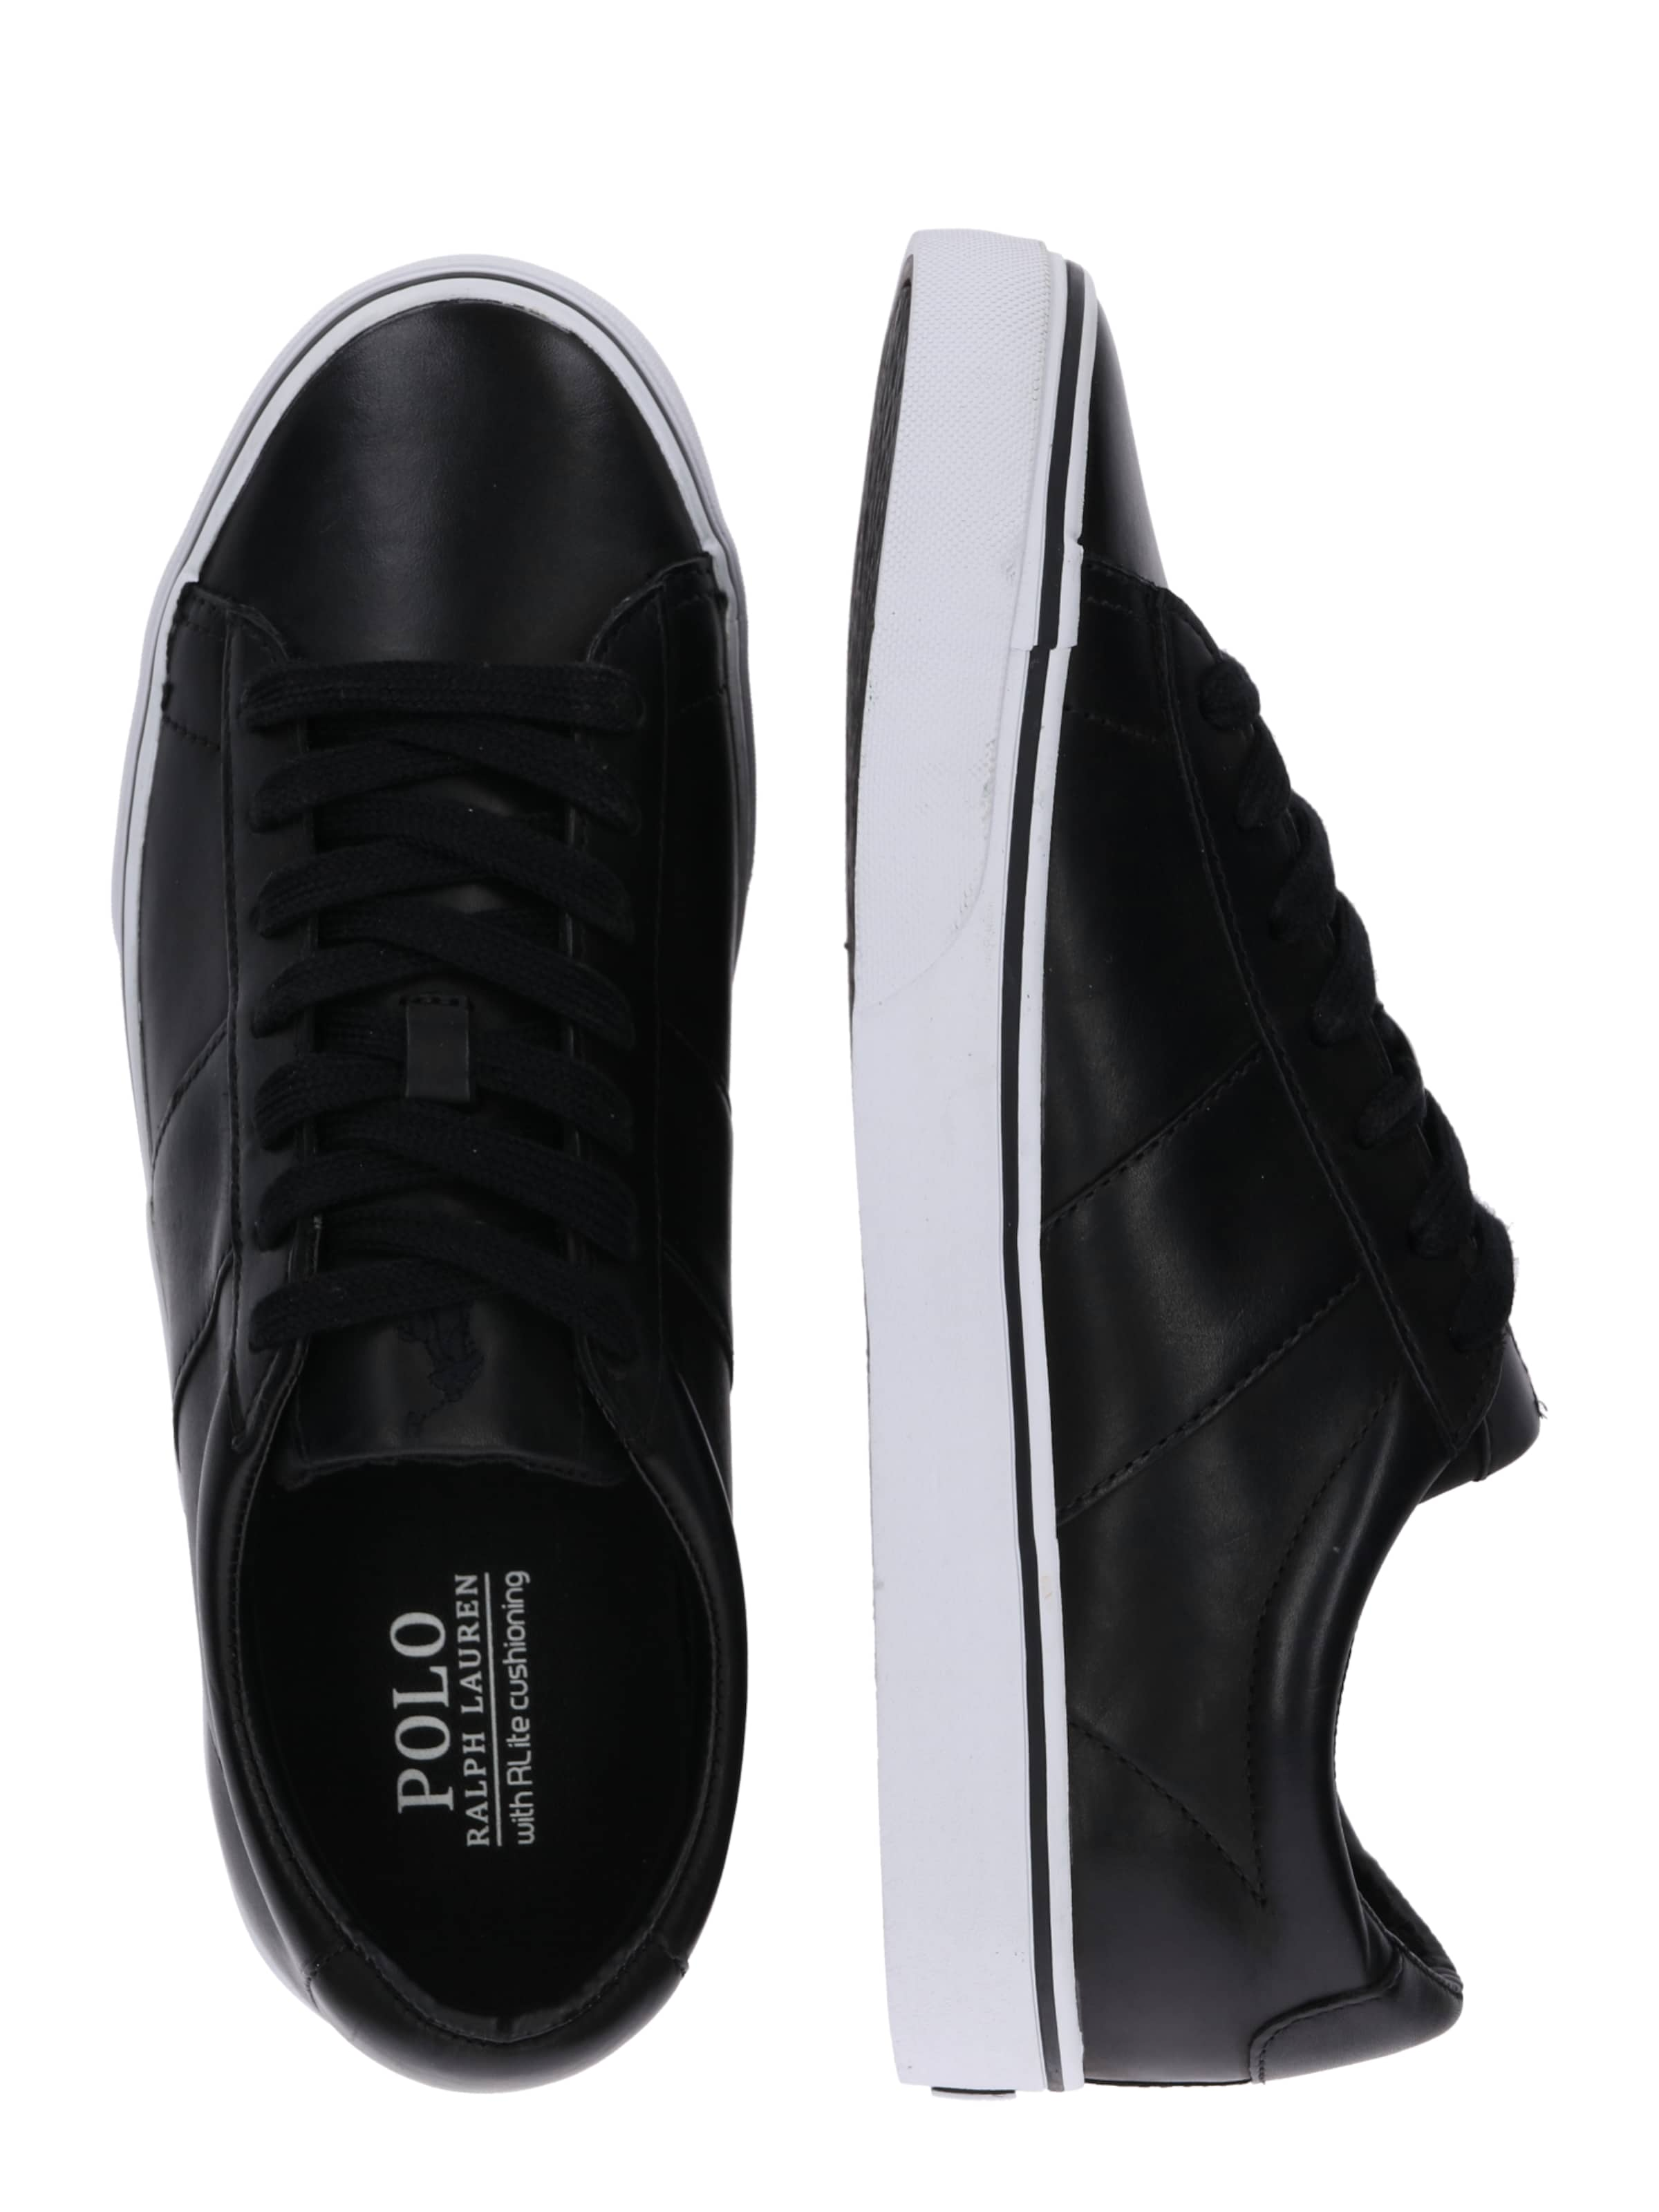 In Ralph Sneaker Schwarz Lauren 'sayer Polo Leather' gbf67yY